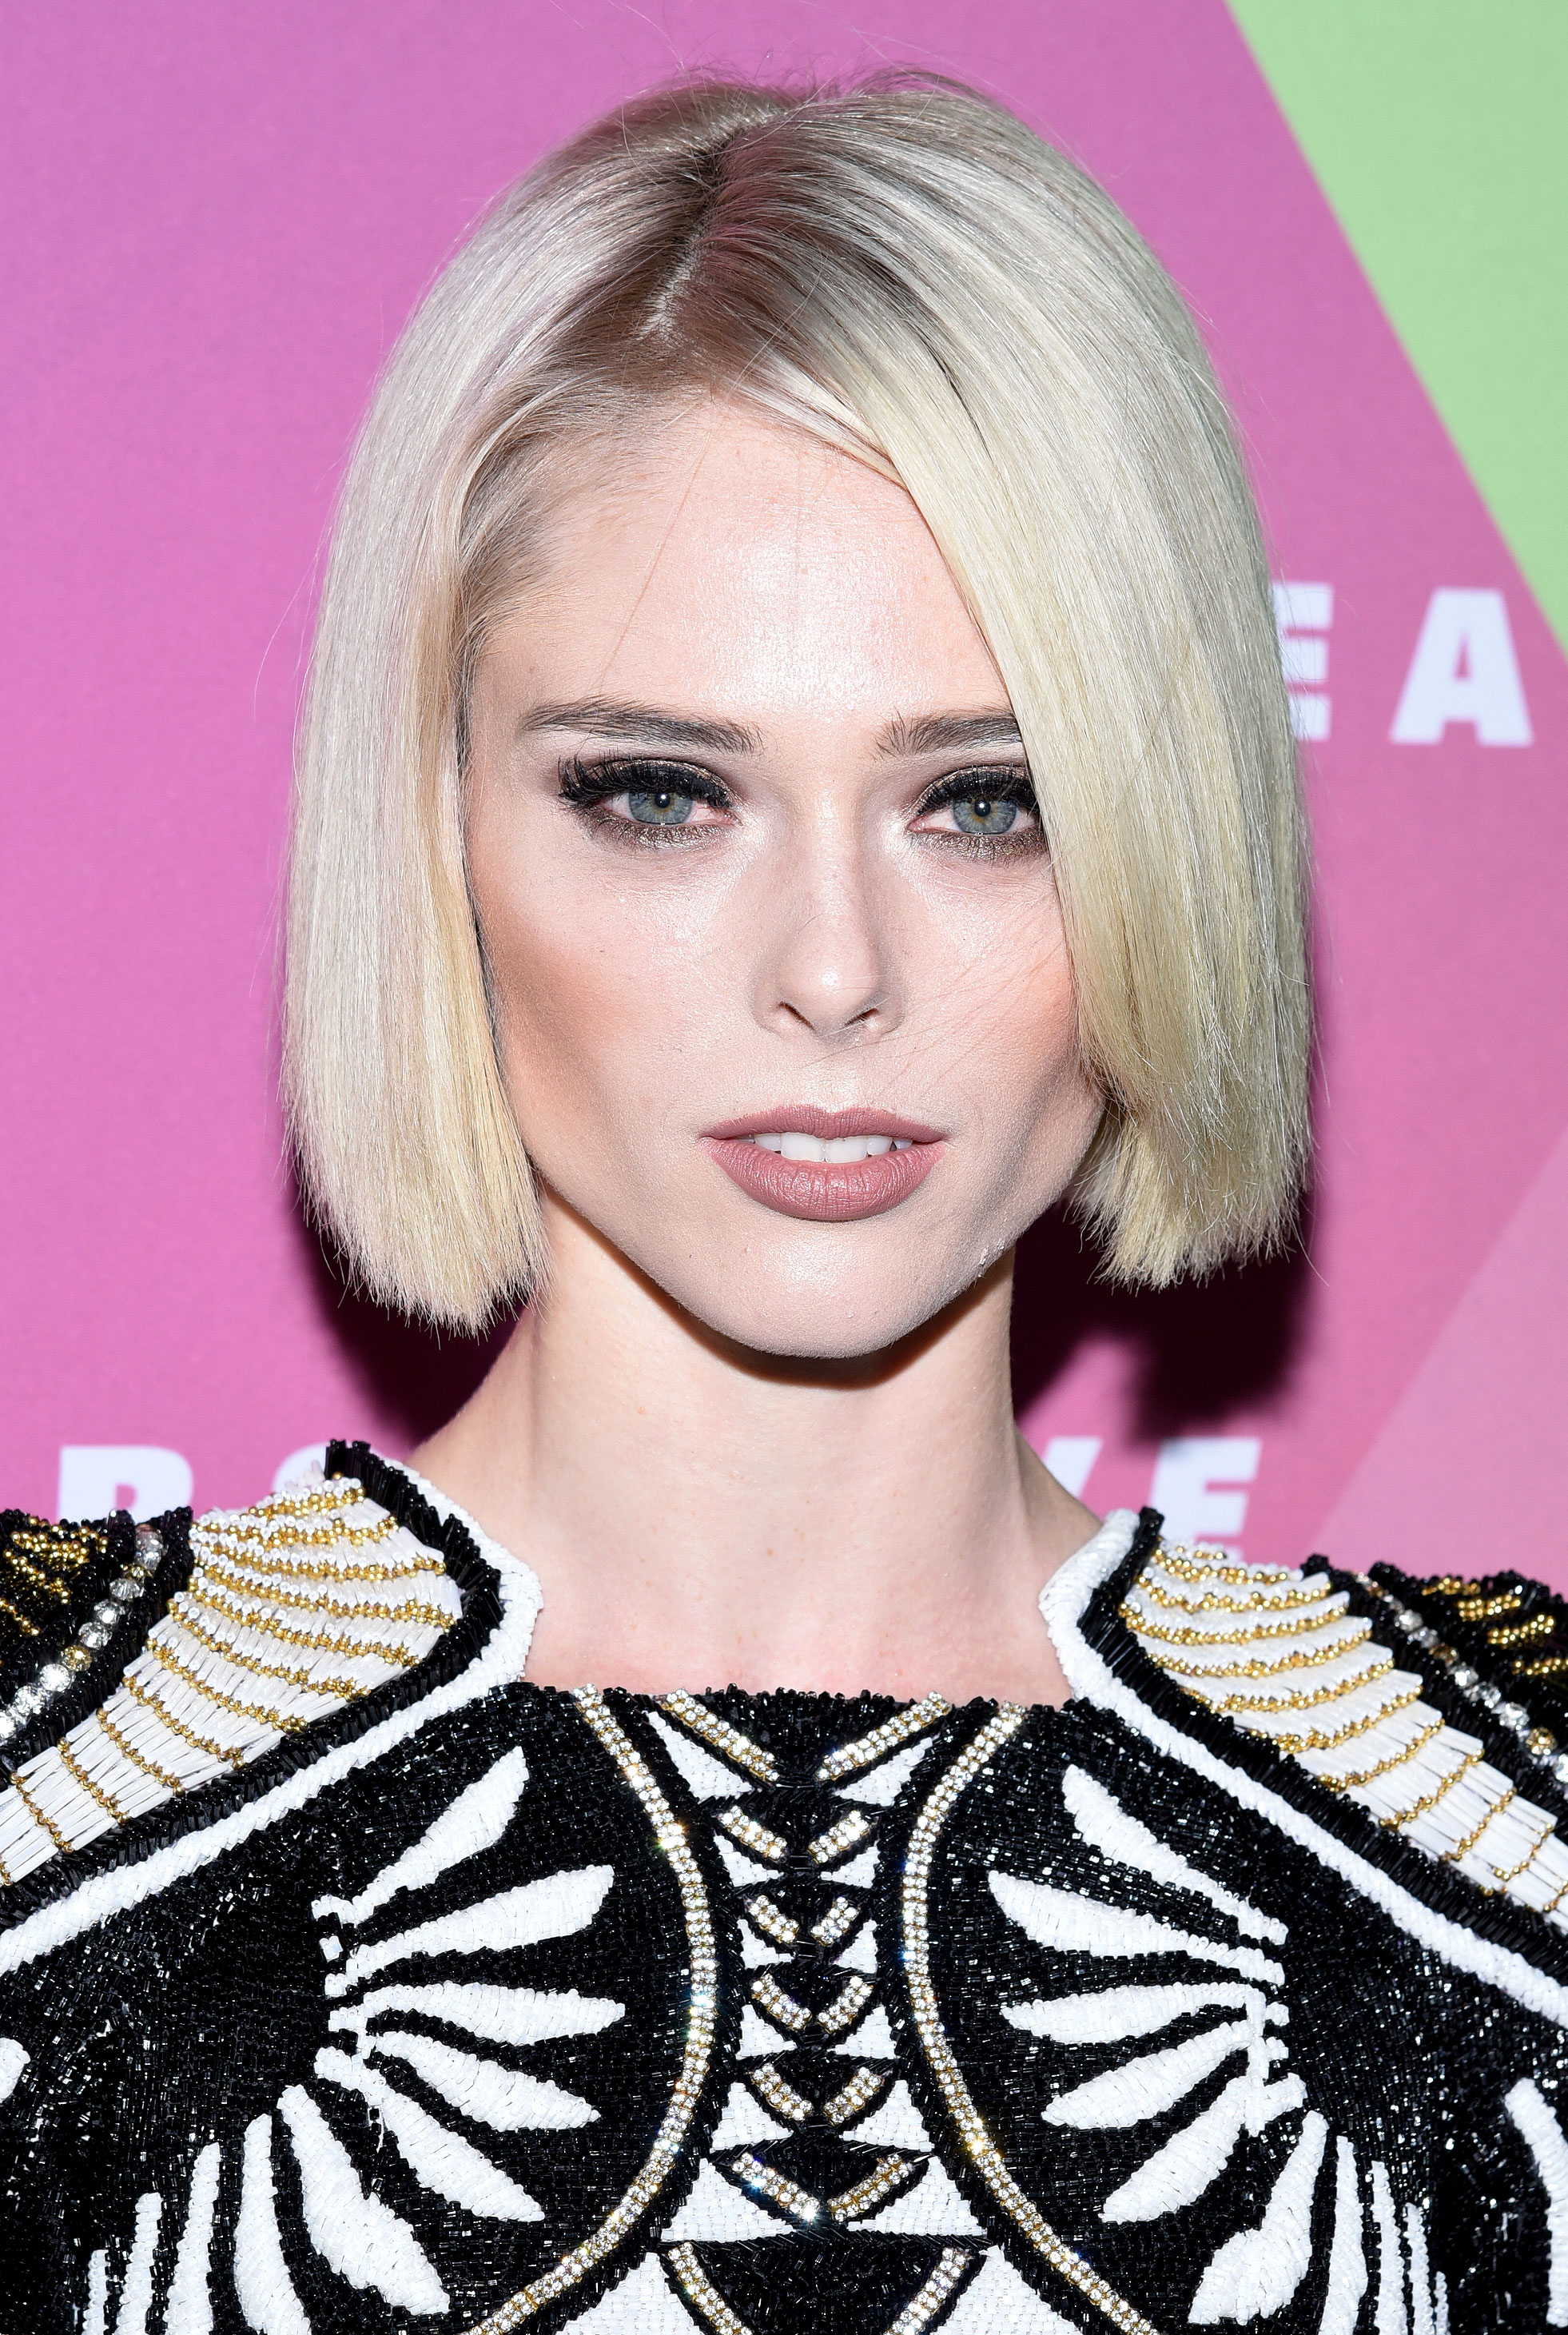 Coco Rocha Ditches Dark Brown Hair for Ice Blonde Bob Before After